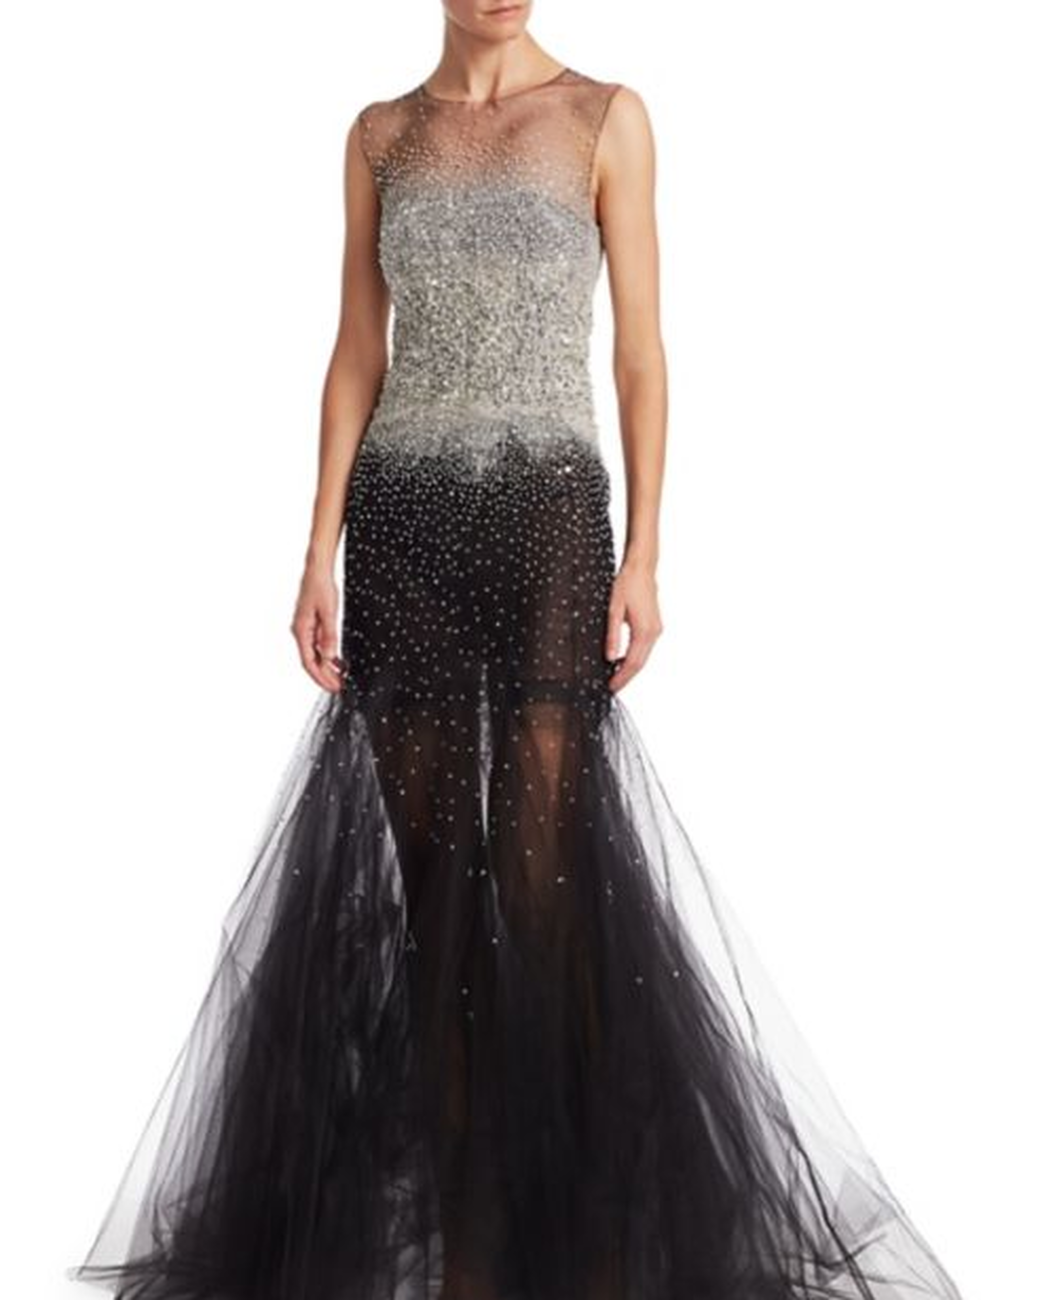 Sleeveless Oscar de la Renta Mother of the Bride Dress with Embroidered Top